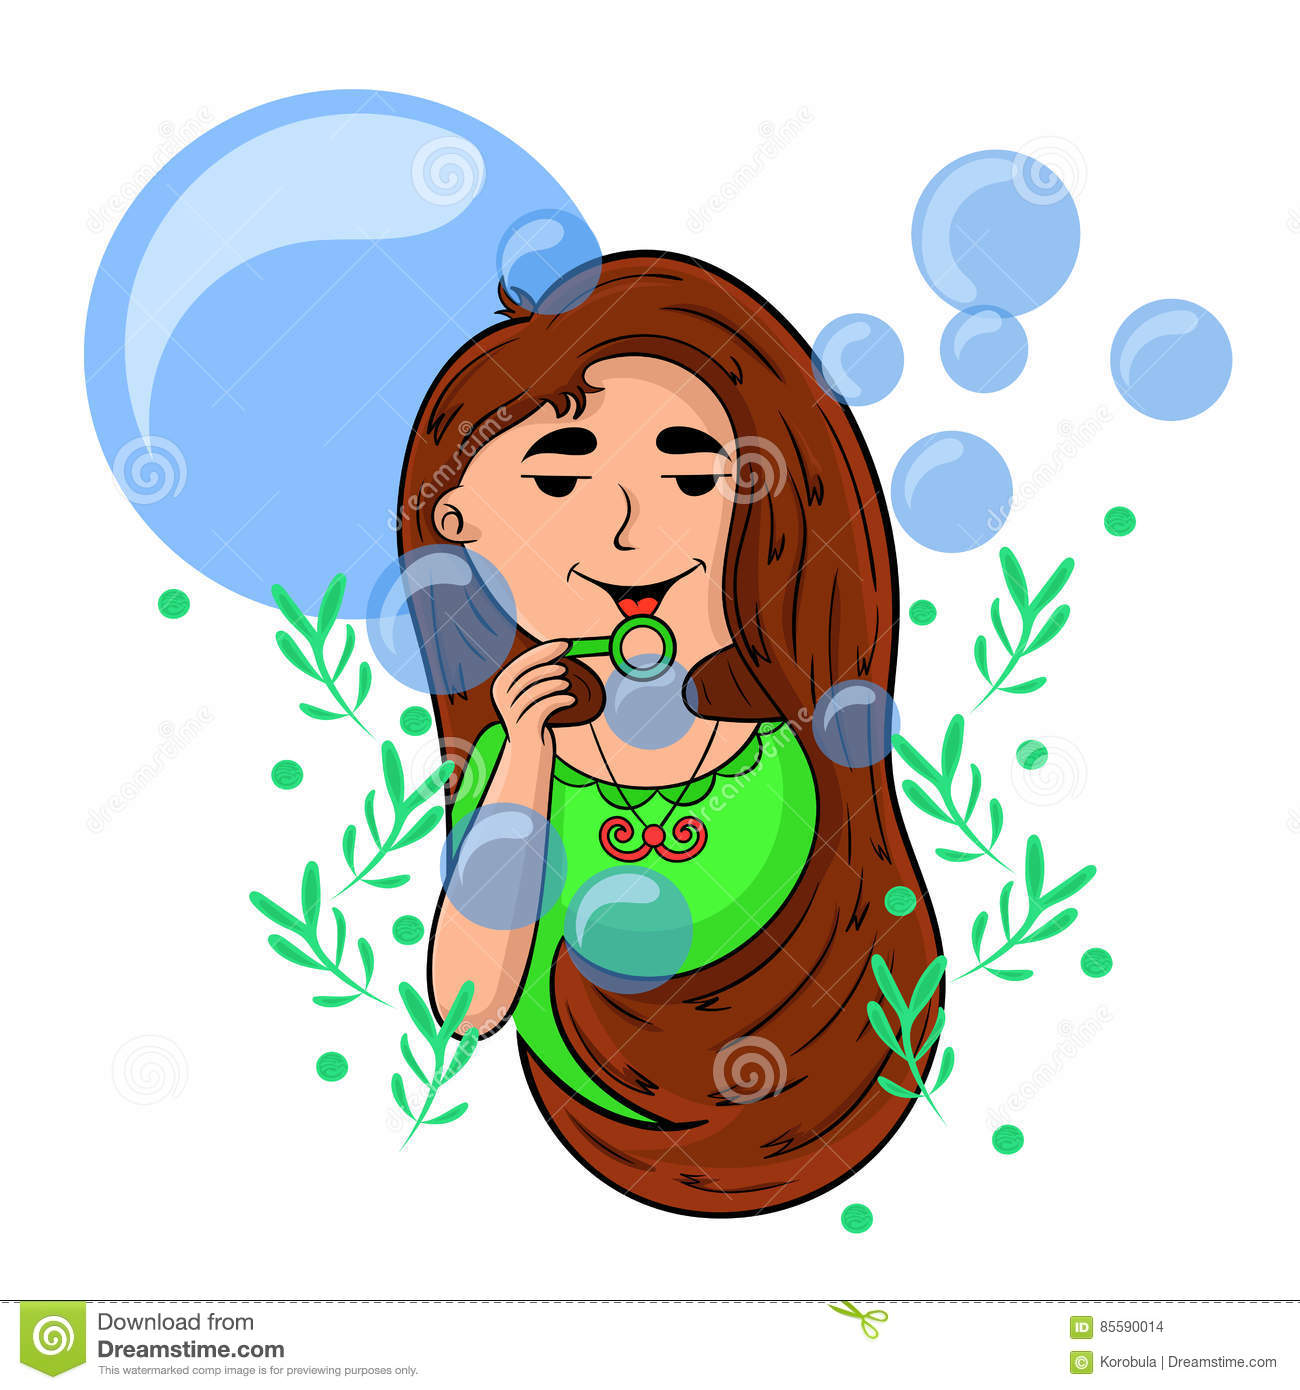 Cartoon girl playing with soap bubbles.